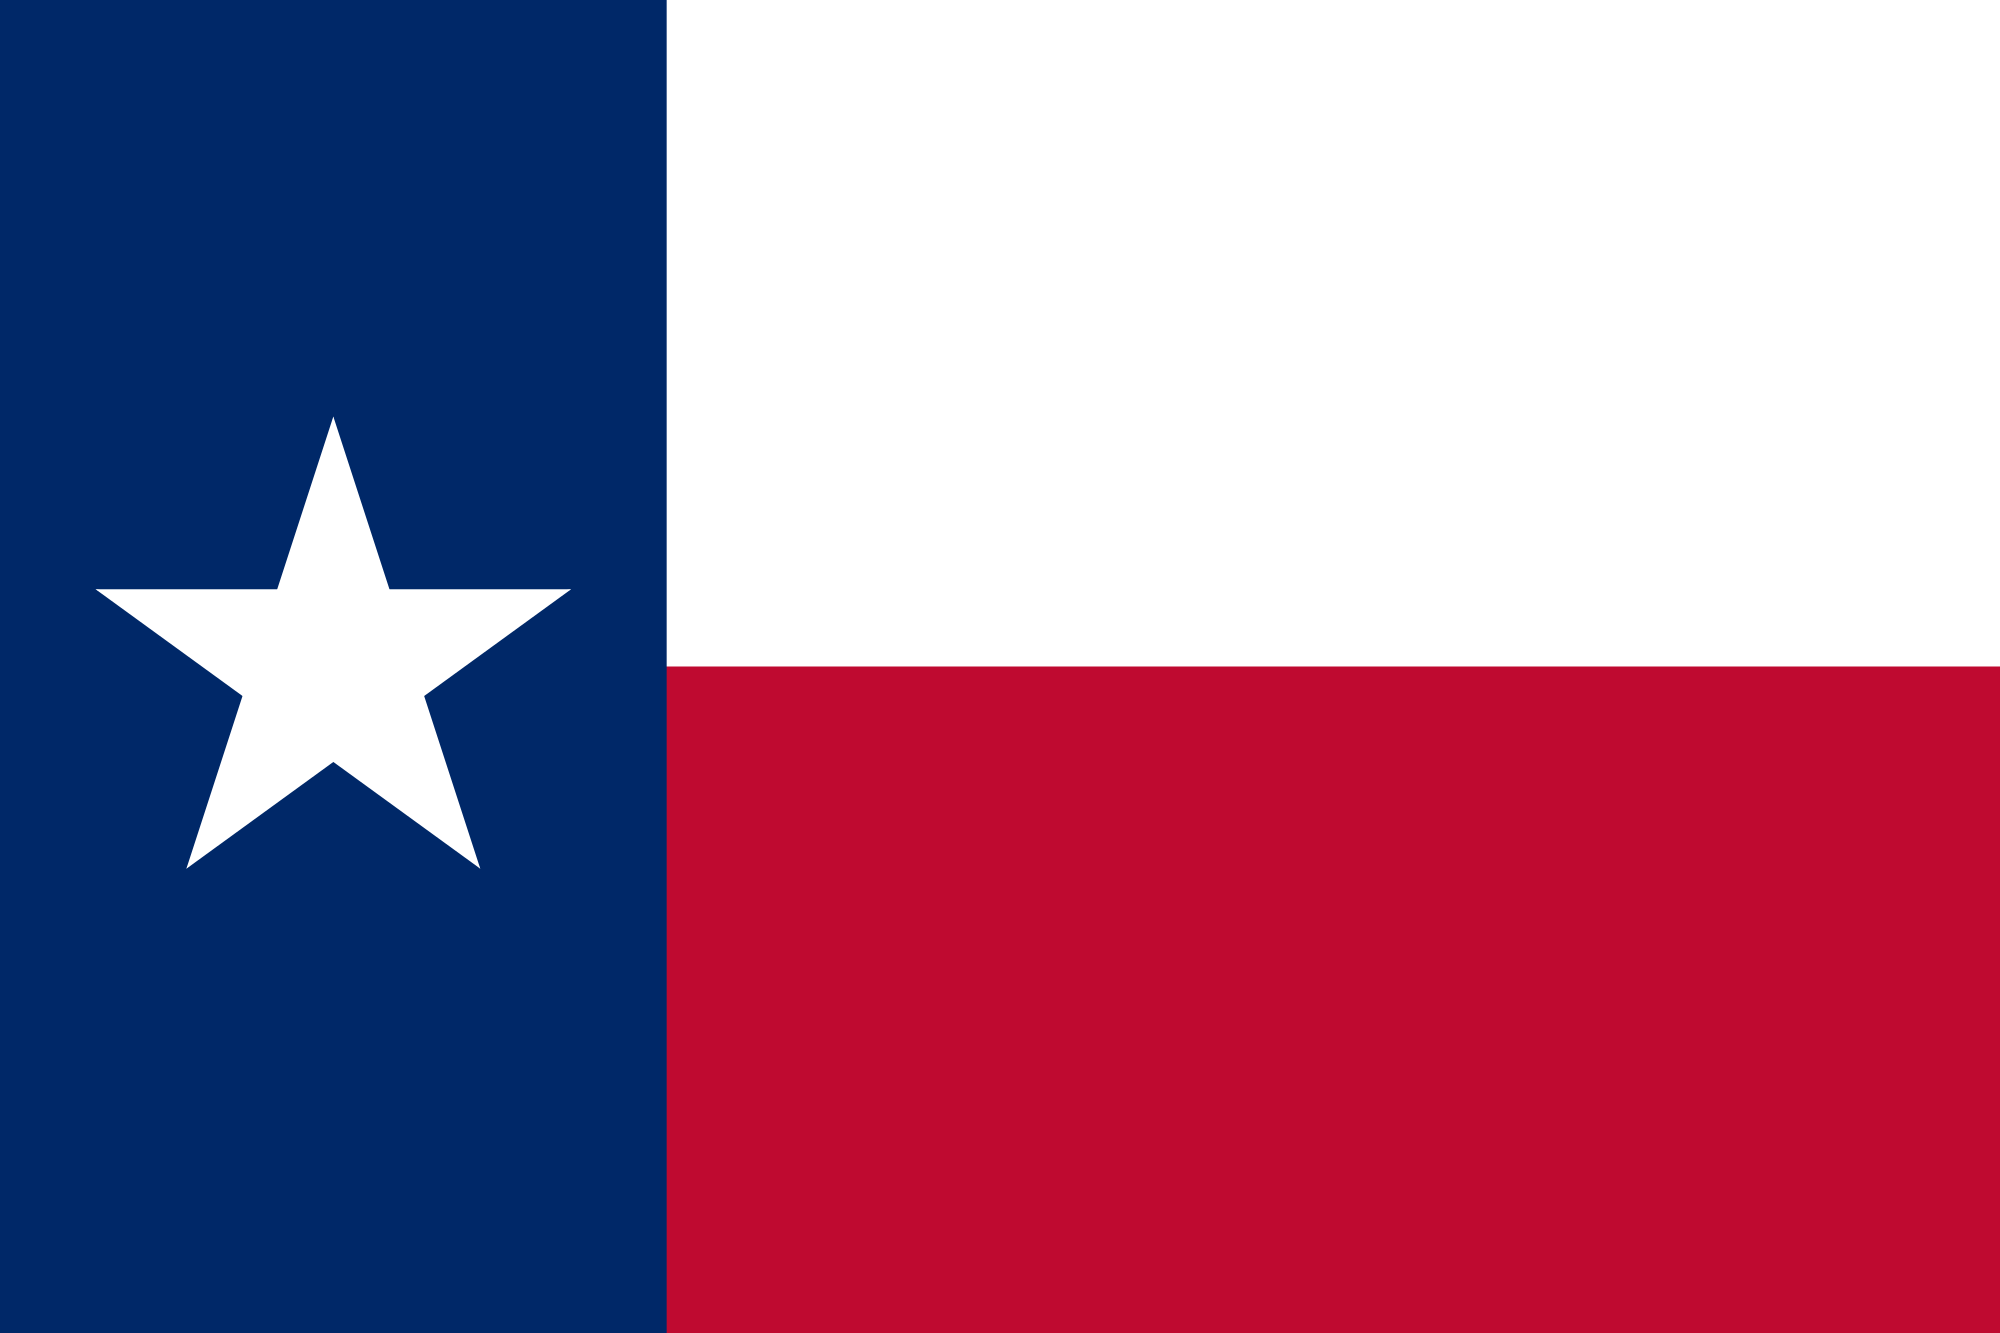 Flag of Texas - Wikipedia